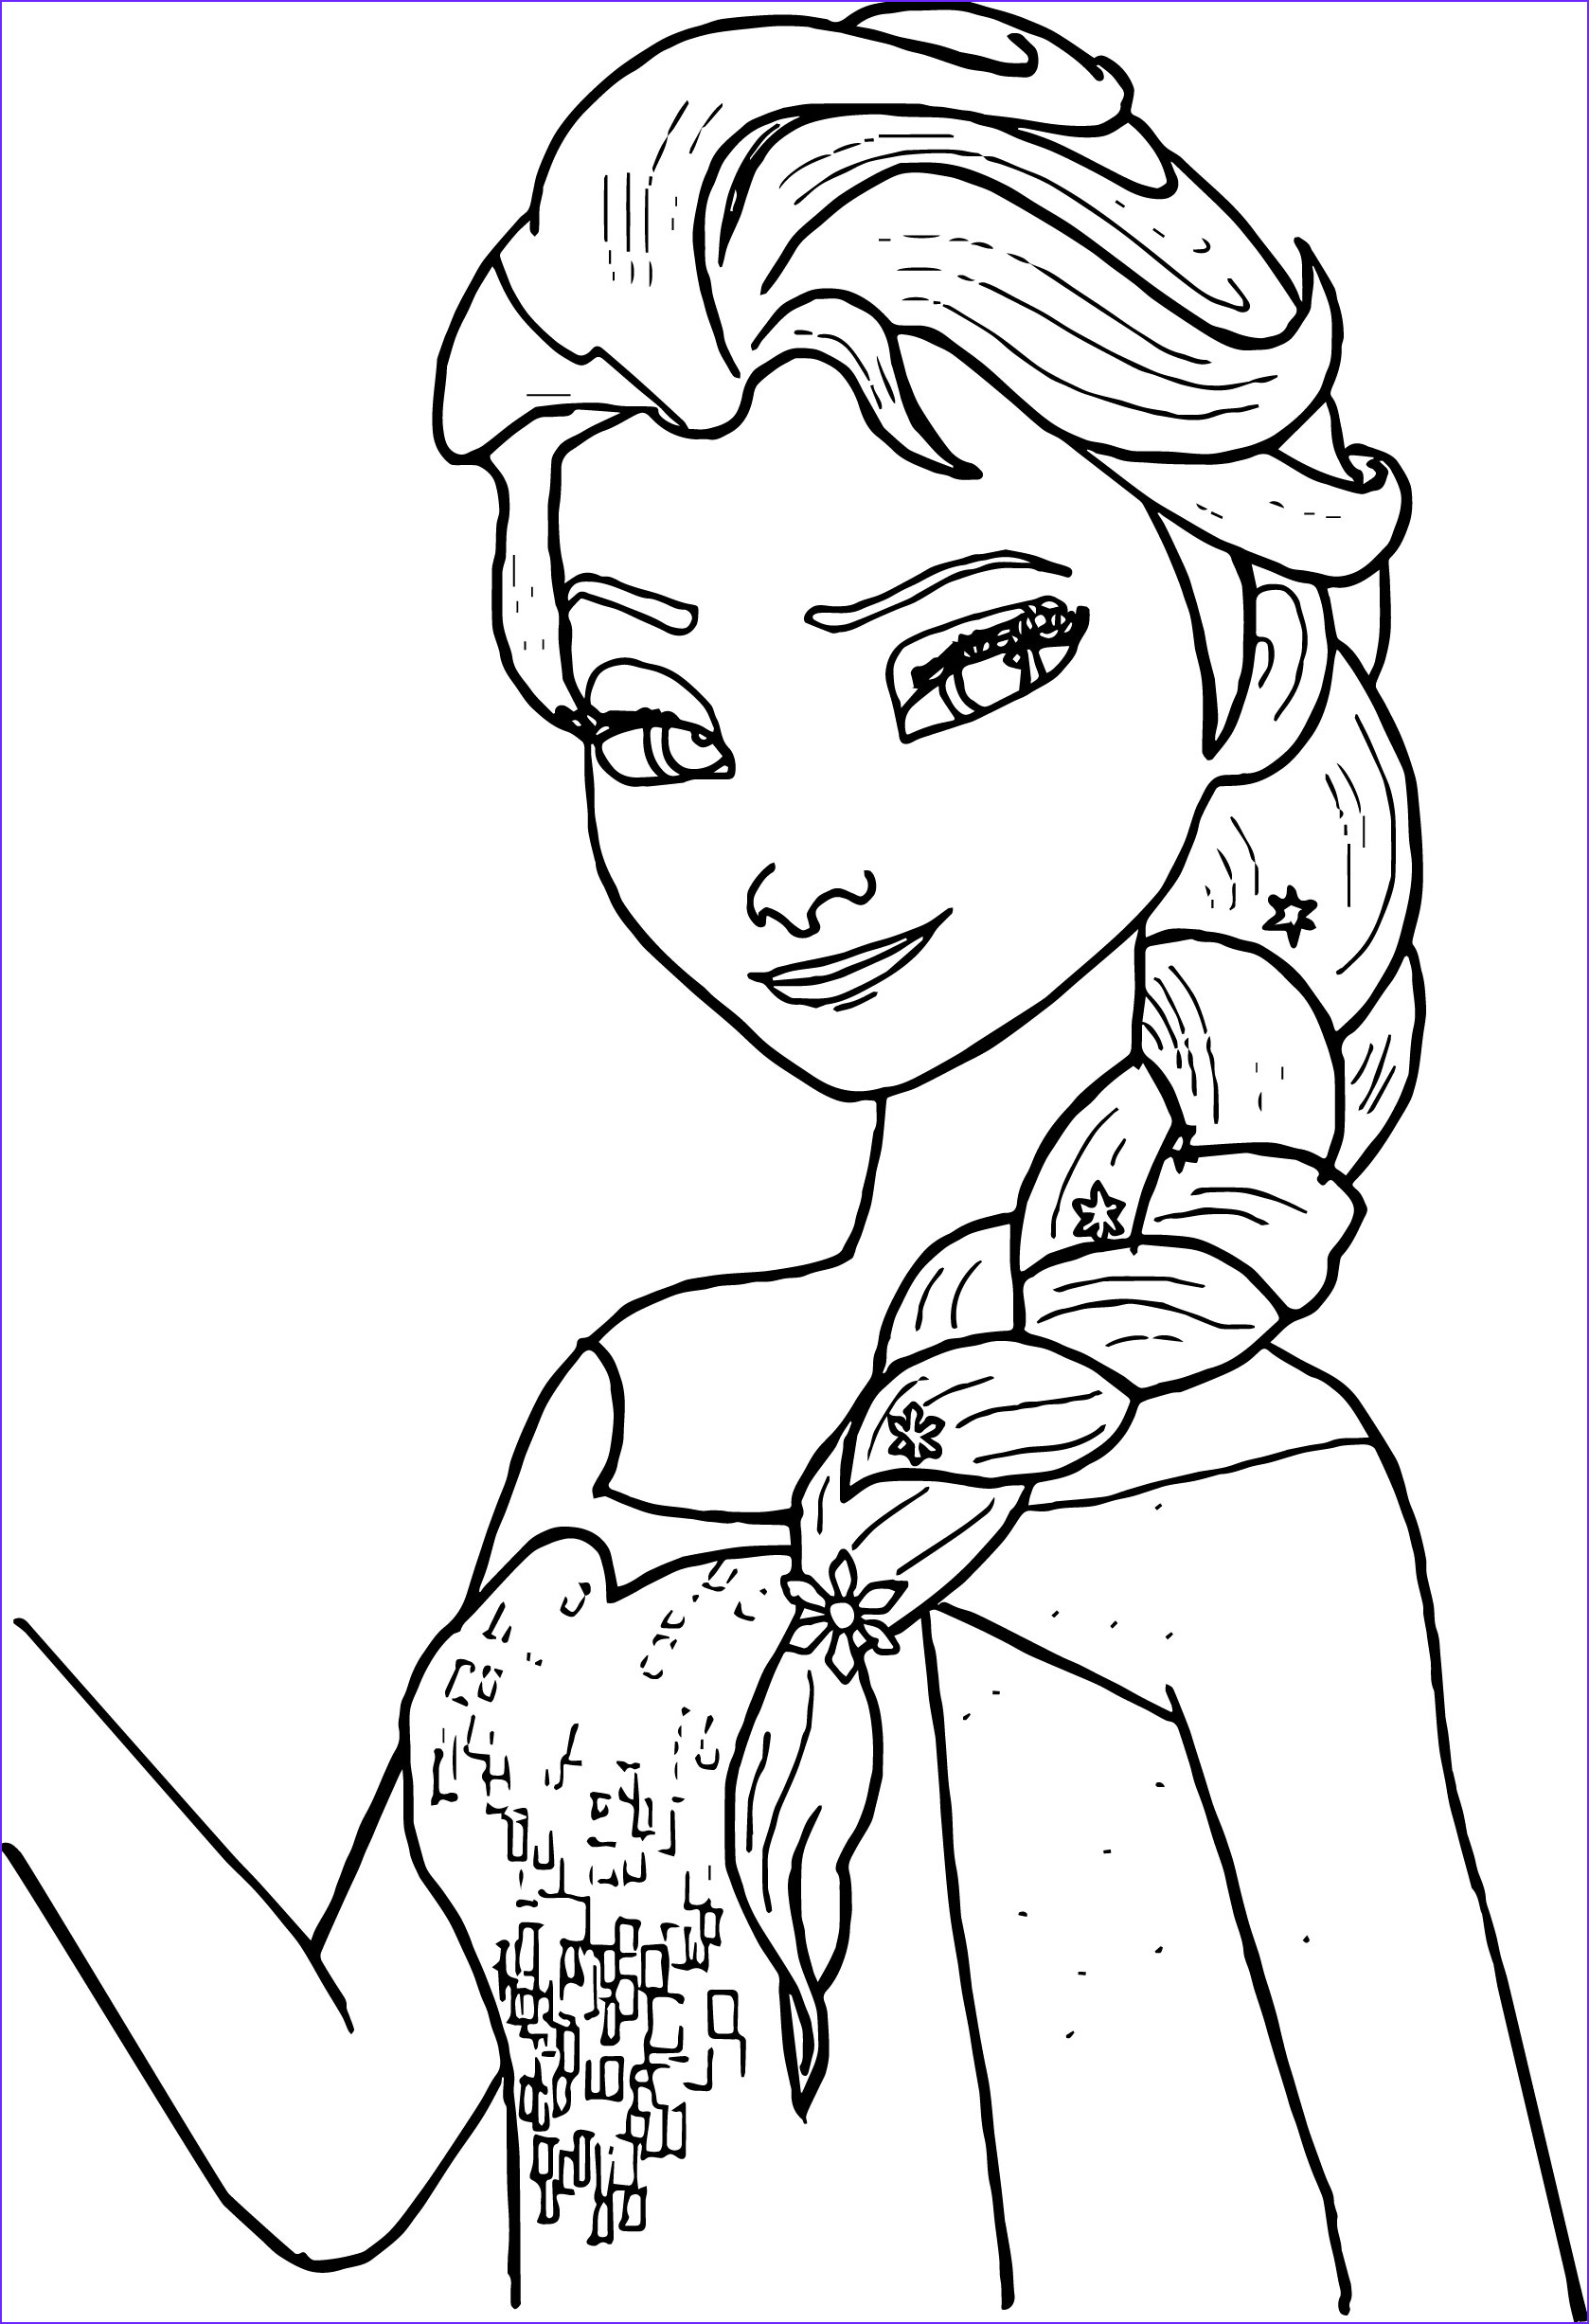 Best Coloring Book for toddlers Cool Photos Free Printable Elsa Coloring Pages for Kids Best